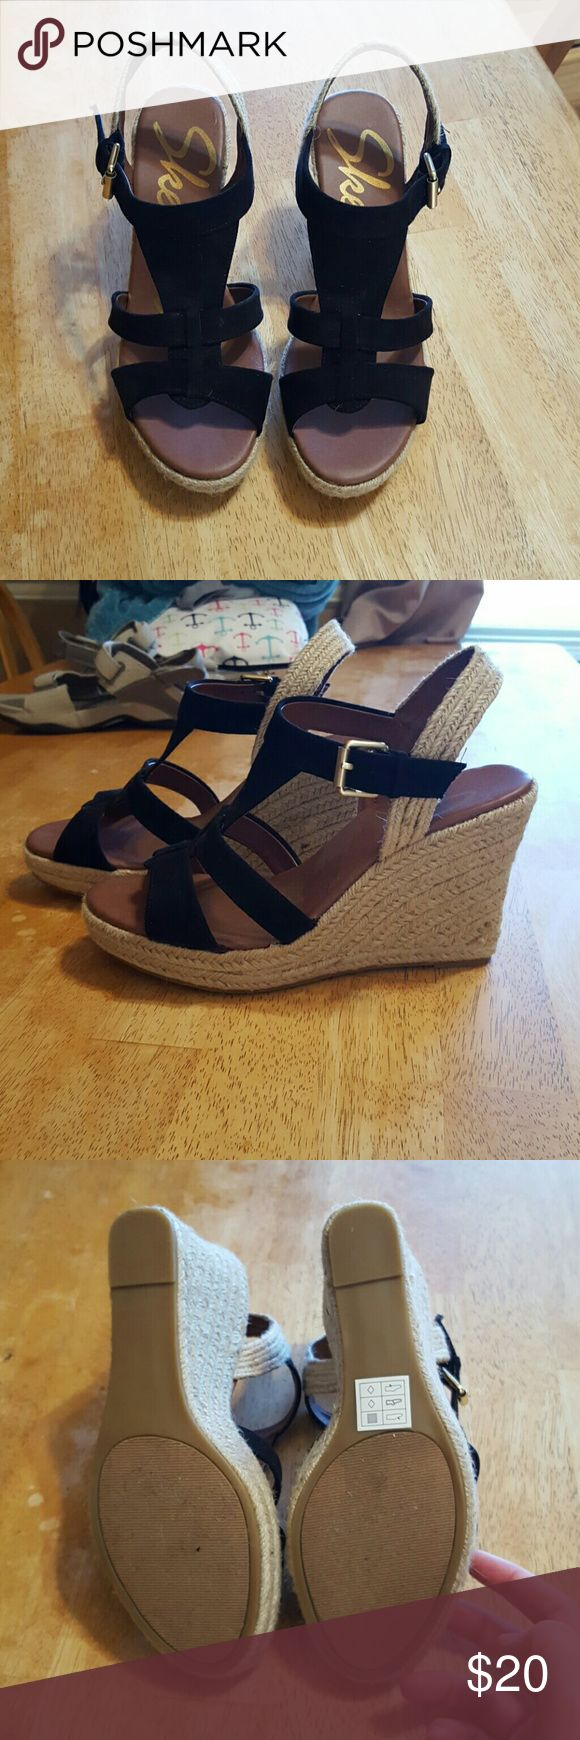 """Skechers Wedges Black and rope skechers Wedges. Wedge is 4"""" high at the back. Never worn. Skechers Shoes Wedges"""